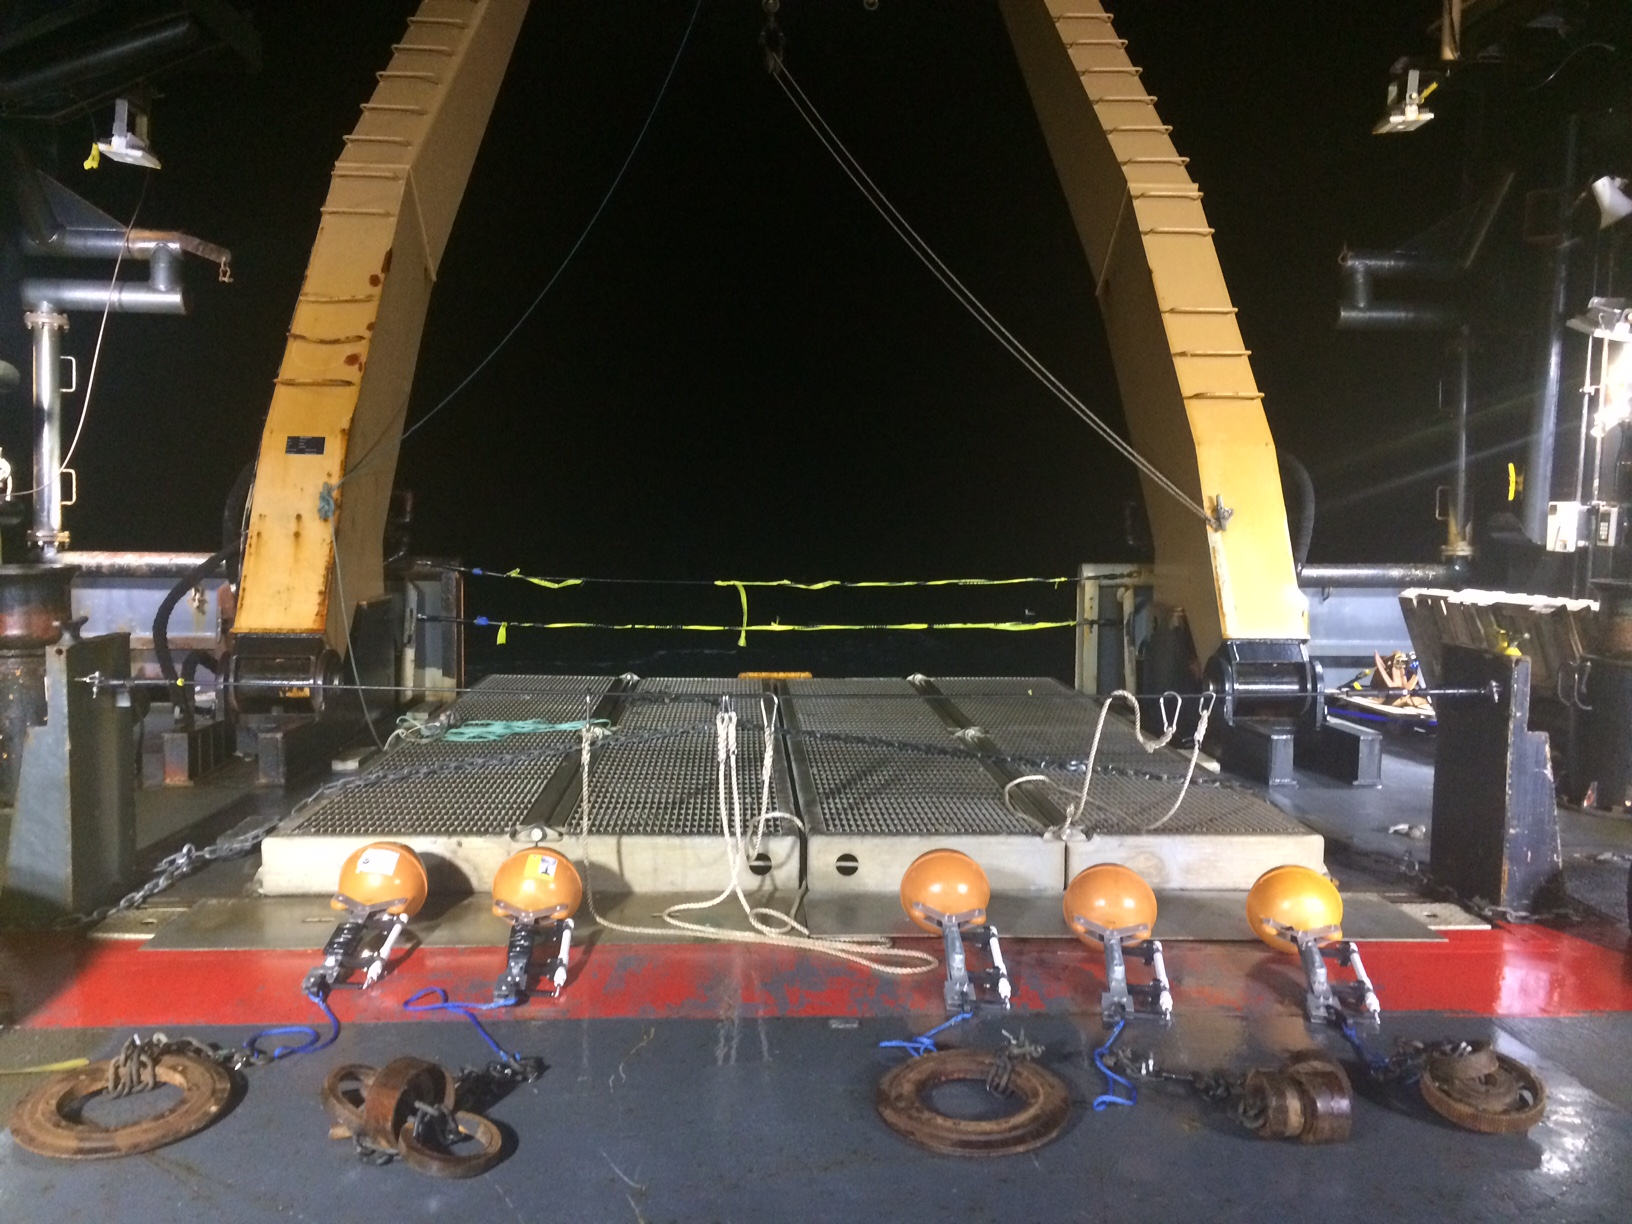 2017 Fall Launch of the Pop-ups from the NOAAS Oscar Dyson